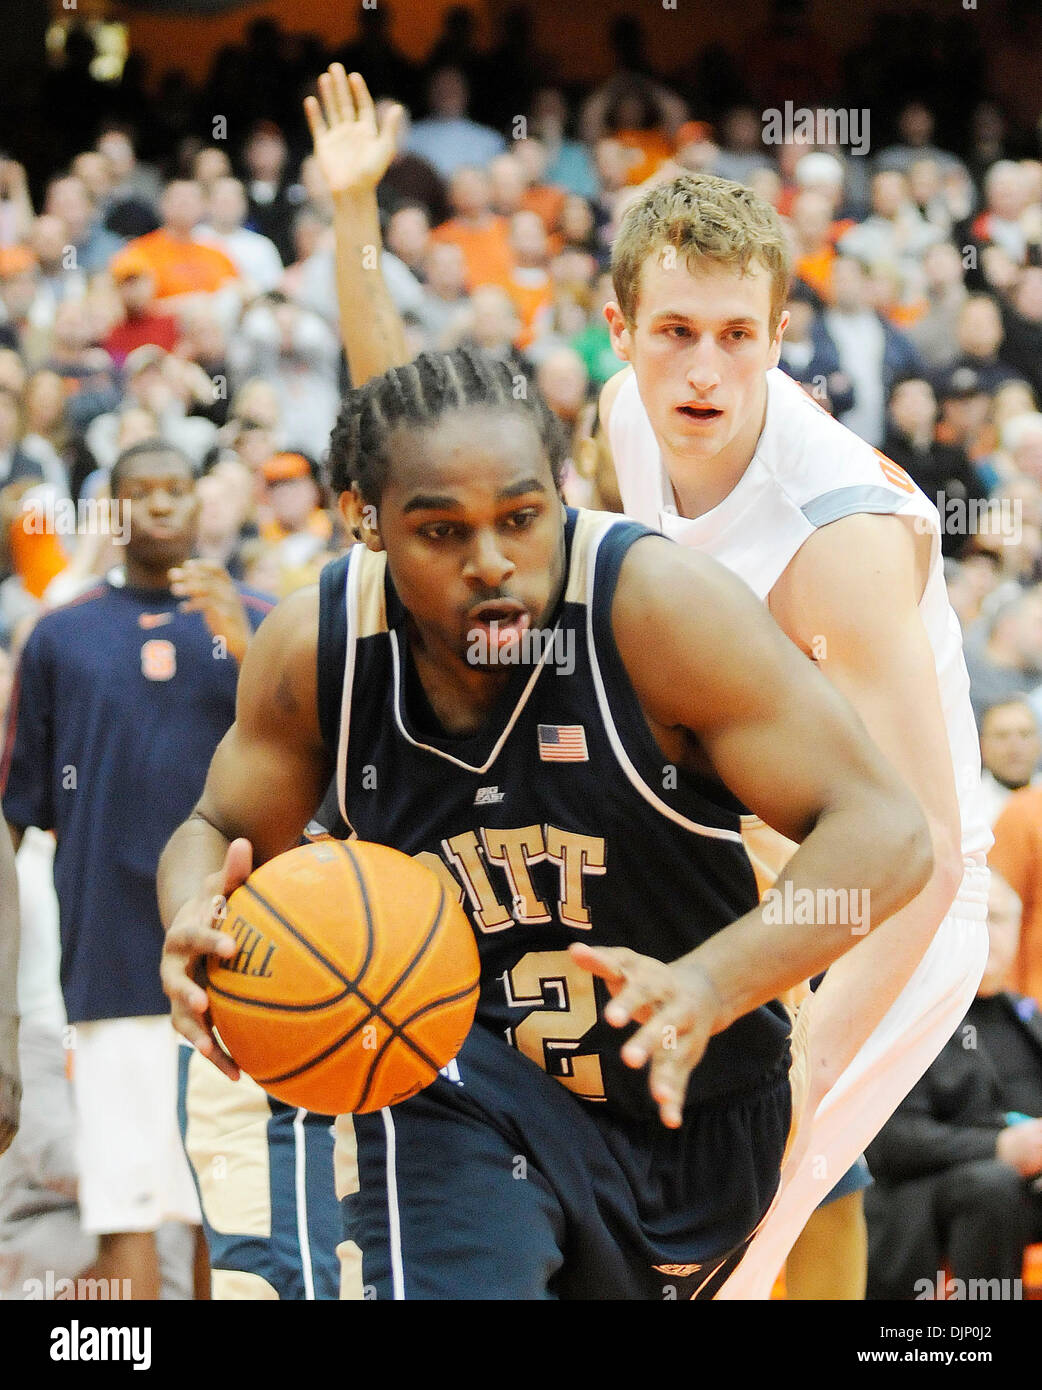 March 1 2008 The University Of Pittsburgh Panthers Mens Basketball